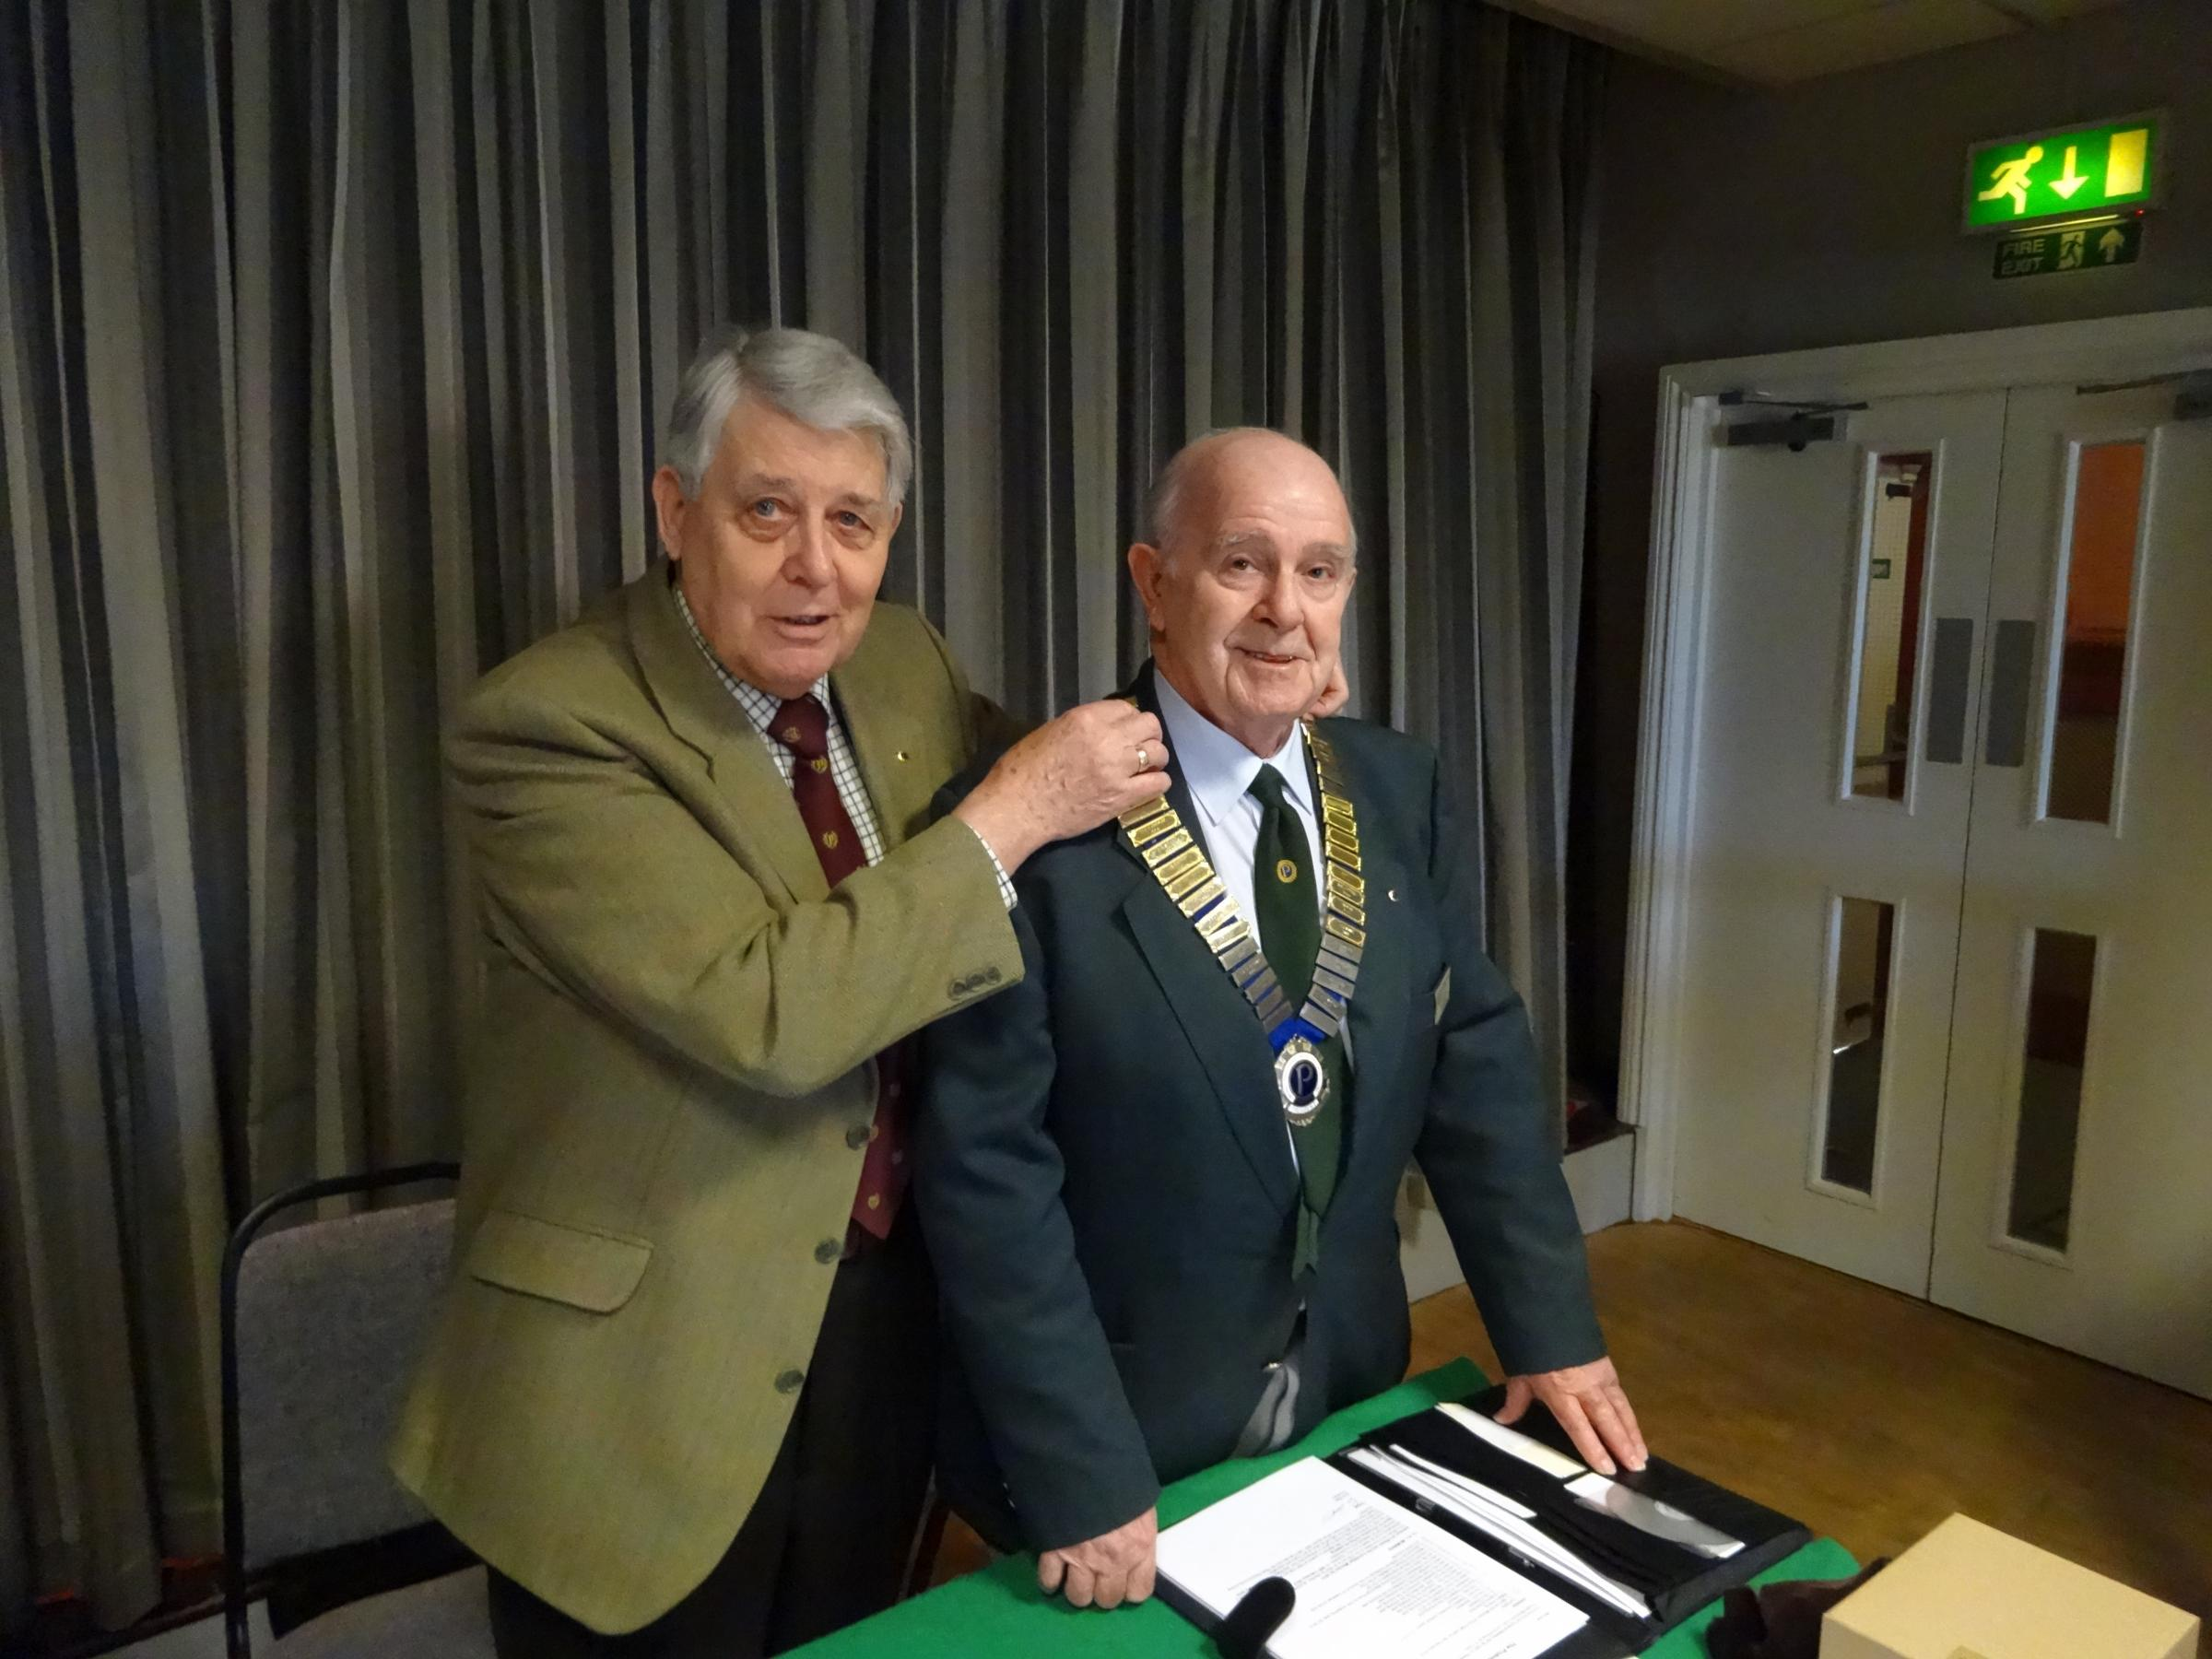 Jim Cox is given the chain by outgoing president Bob Young.